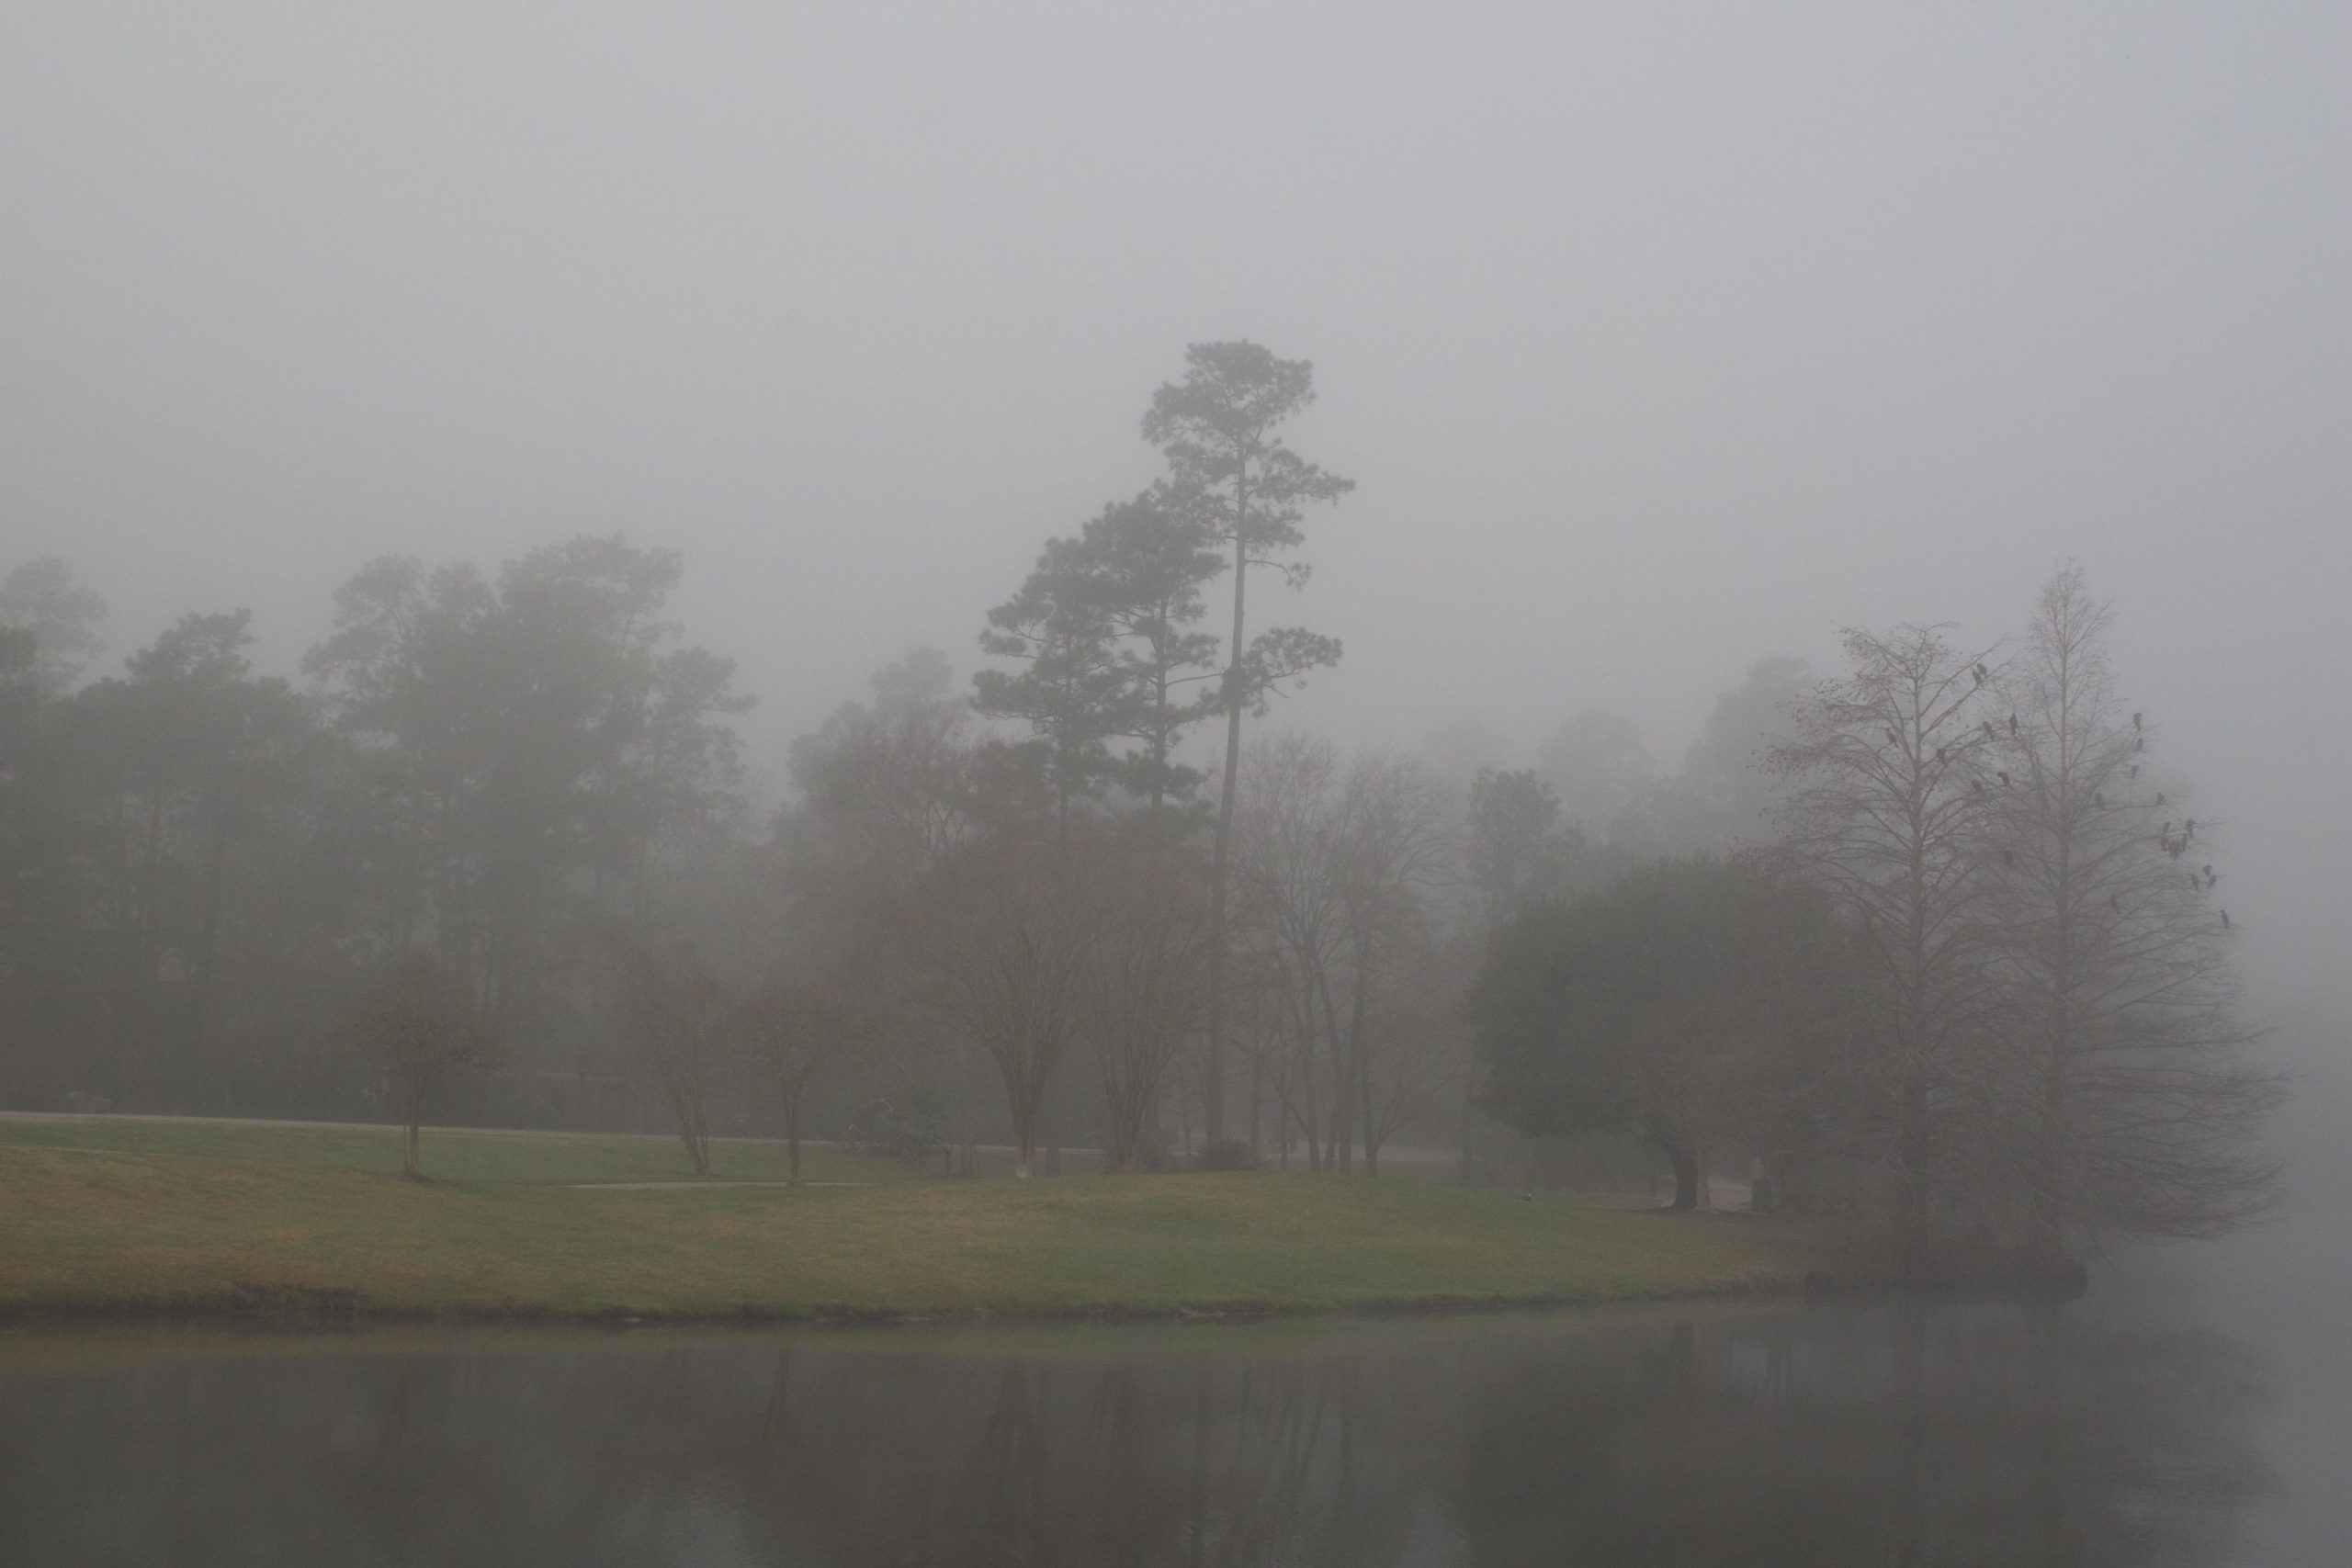 Some days are foggy